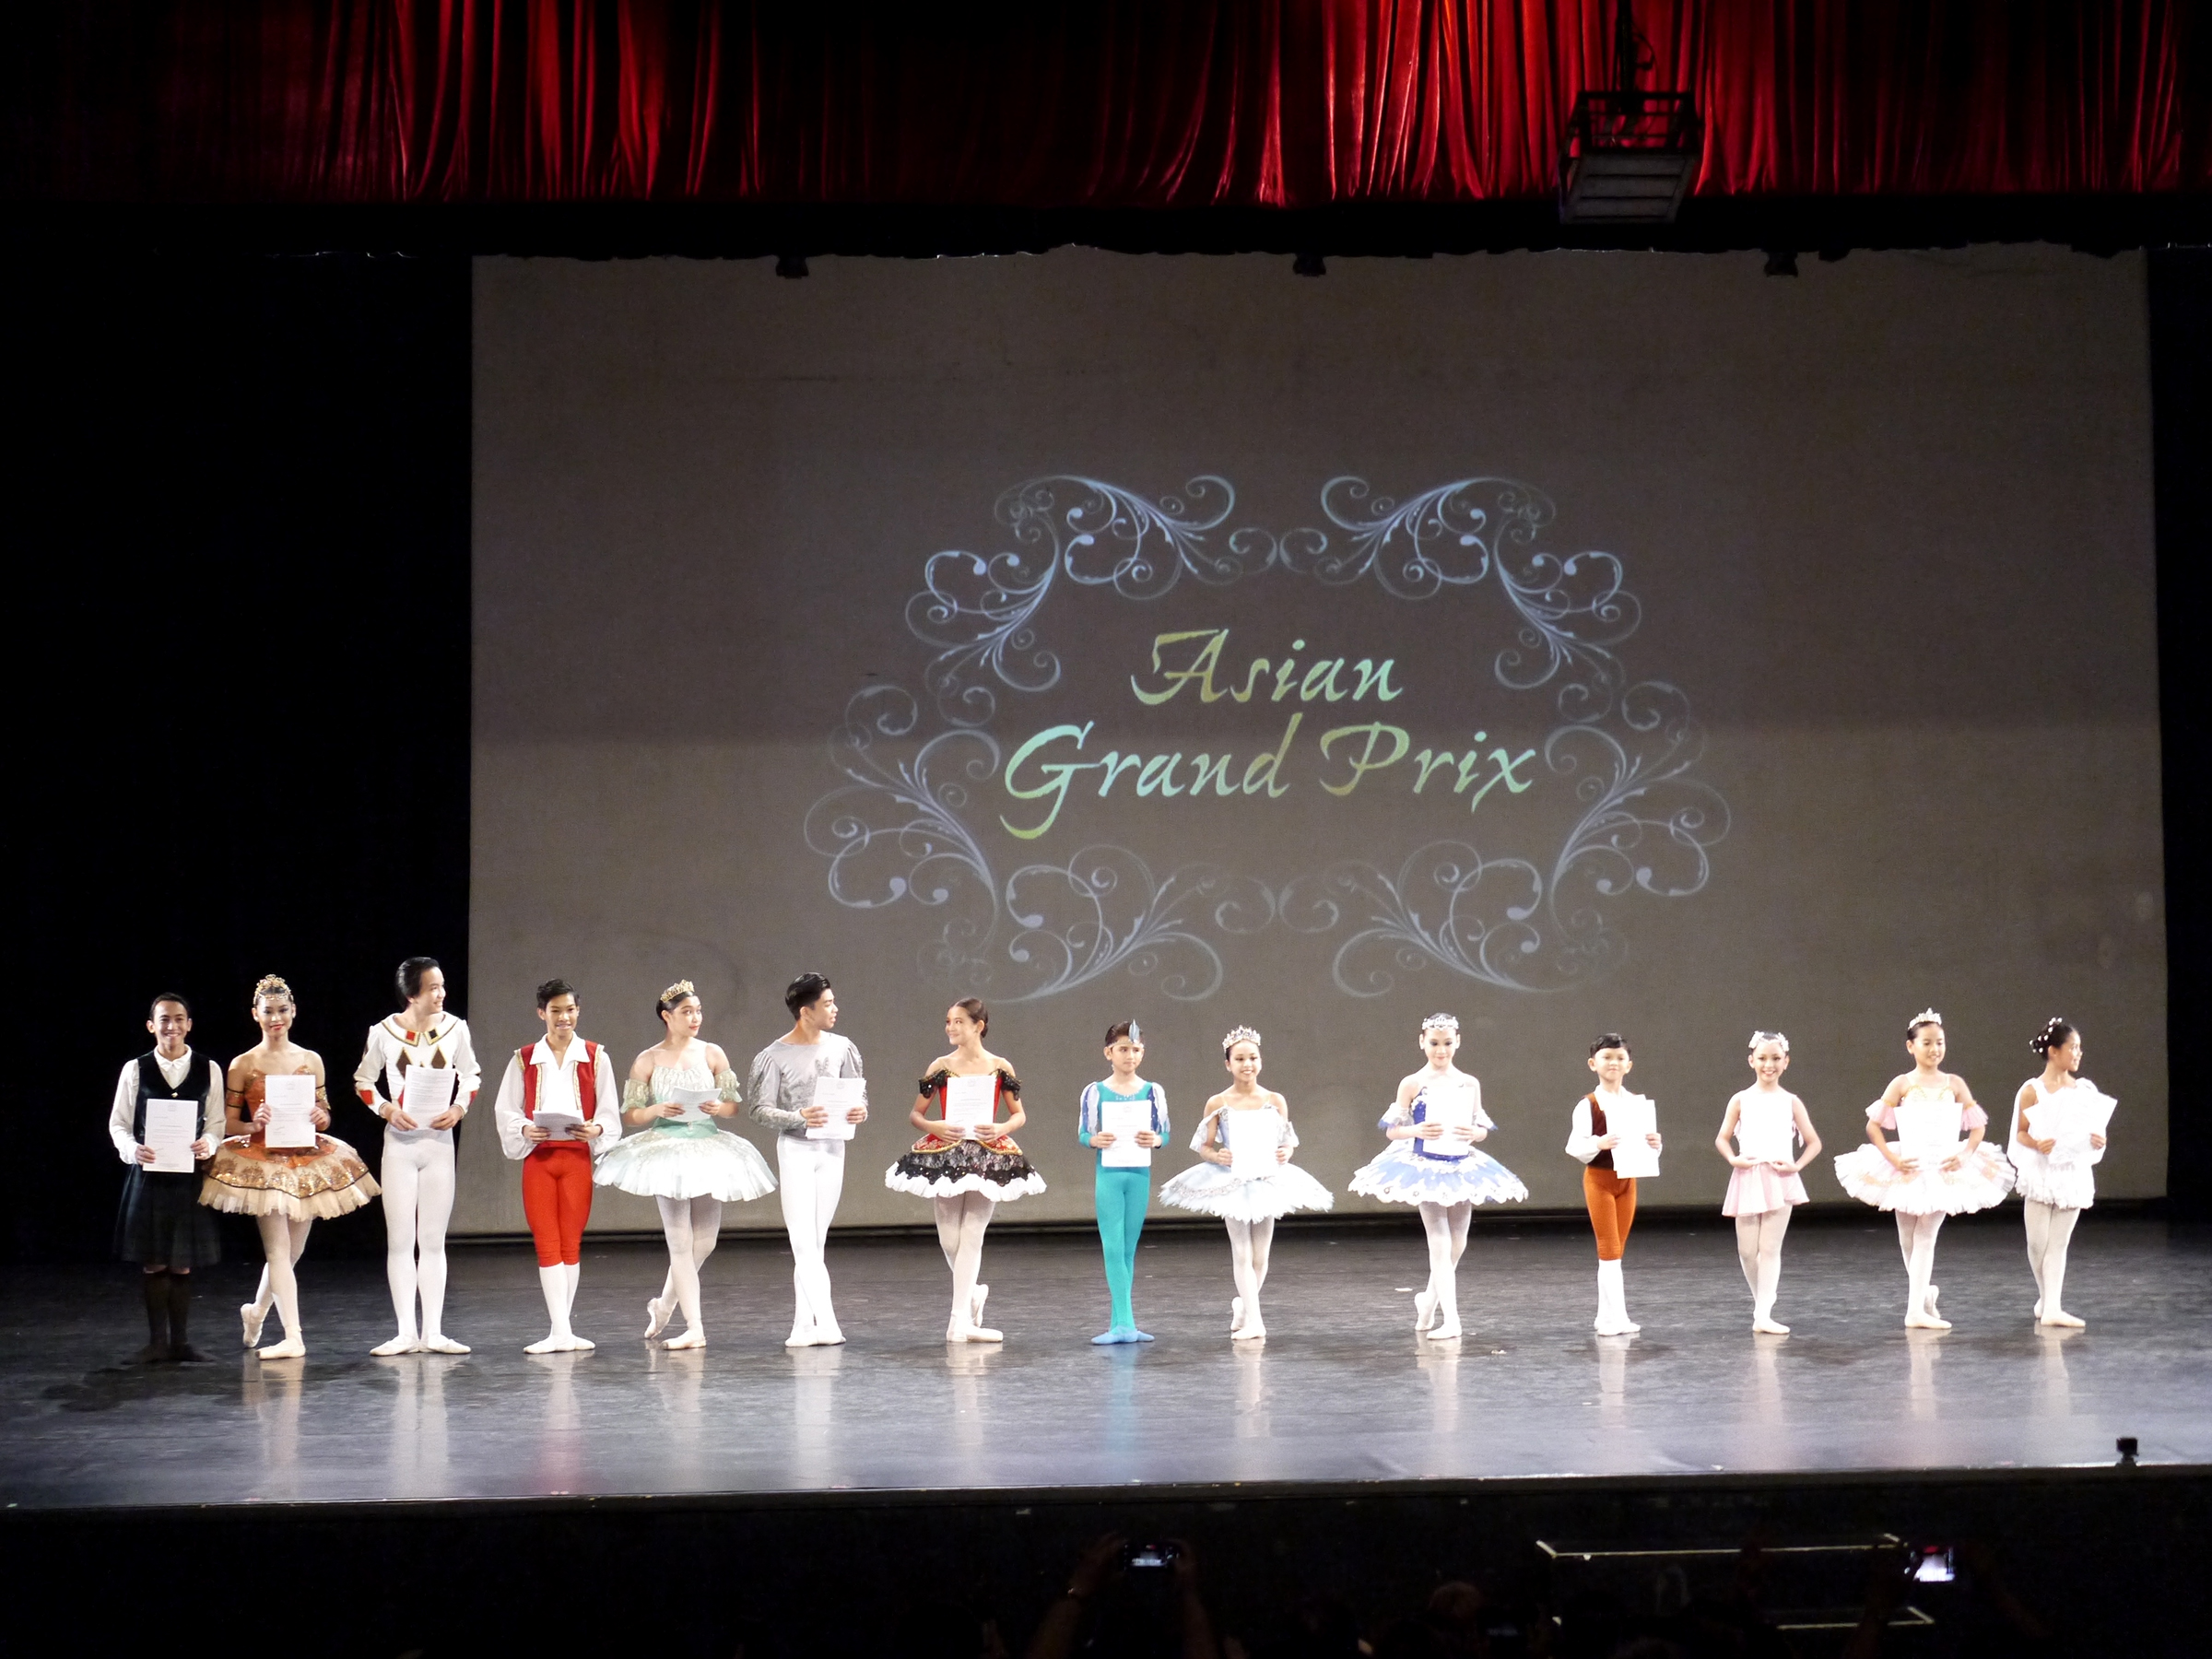 The 14 dancers who have been invited to participate in the Asian Grand Prix in Hong Kong are: (from left) Eduardson Evangelio, Danielle Kleiner, Niccolo Laforteza, Danier Laganzo, Monique Valera, Vin Joshua Saagundo, Anna Isabelle Huang, Juan Angelo De Leon, Renee Antonie Aguilar, AJ Reburiano, Vin Lance Saagundo, Anna Maria Ponferrada, Reese Theanna Mateo and Erine Theone King. Photo by Giselle P. Kasilag